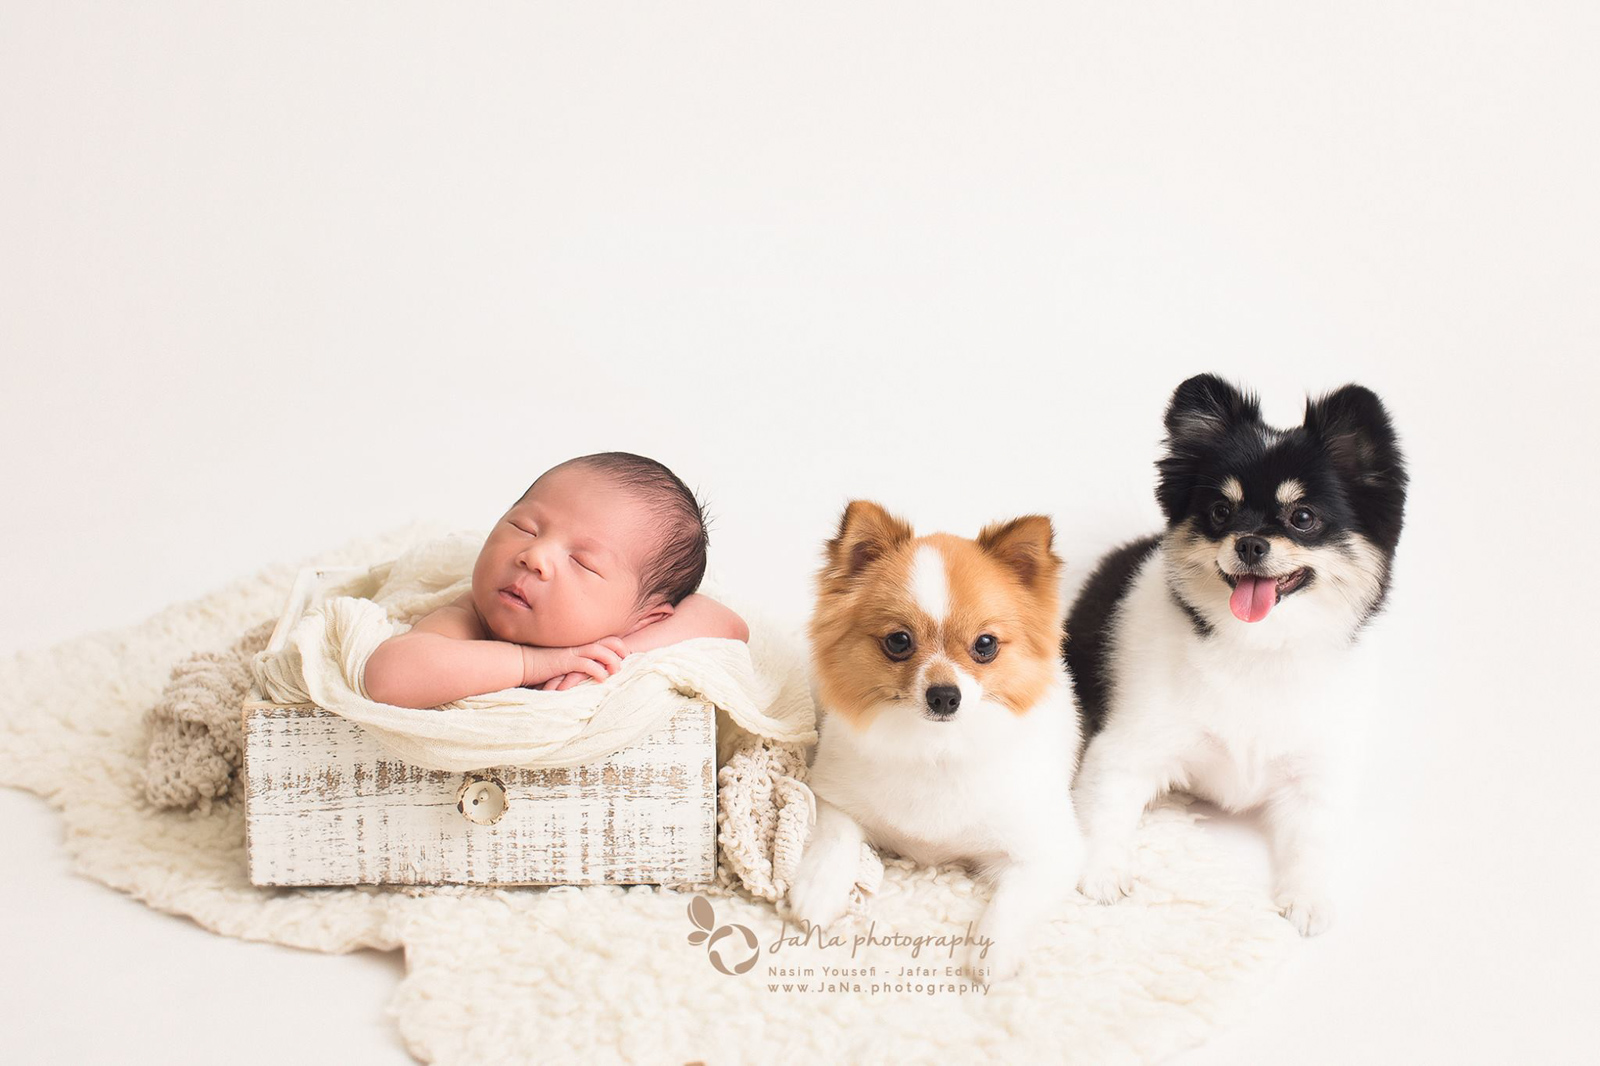 newborn baby boy with 2 dogs in a white background